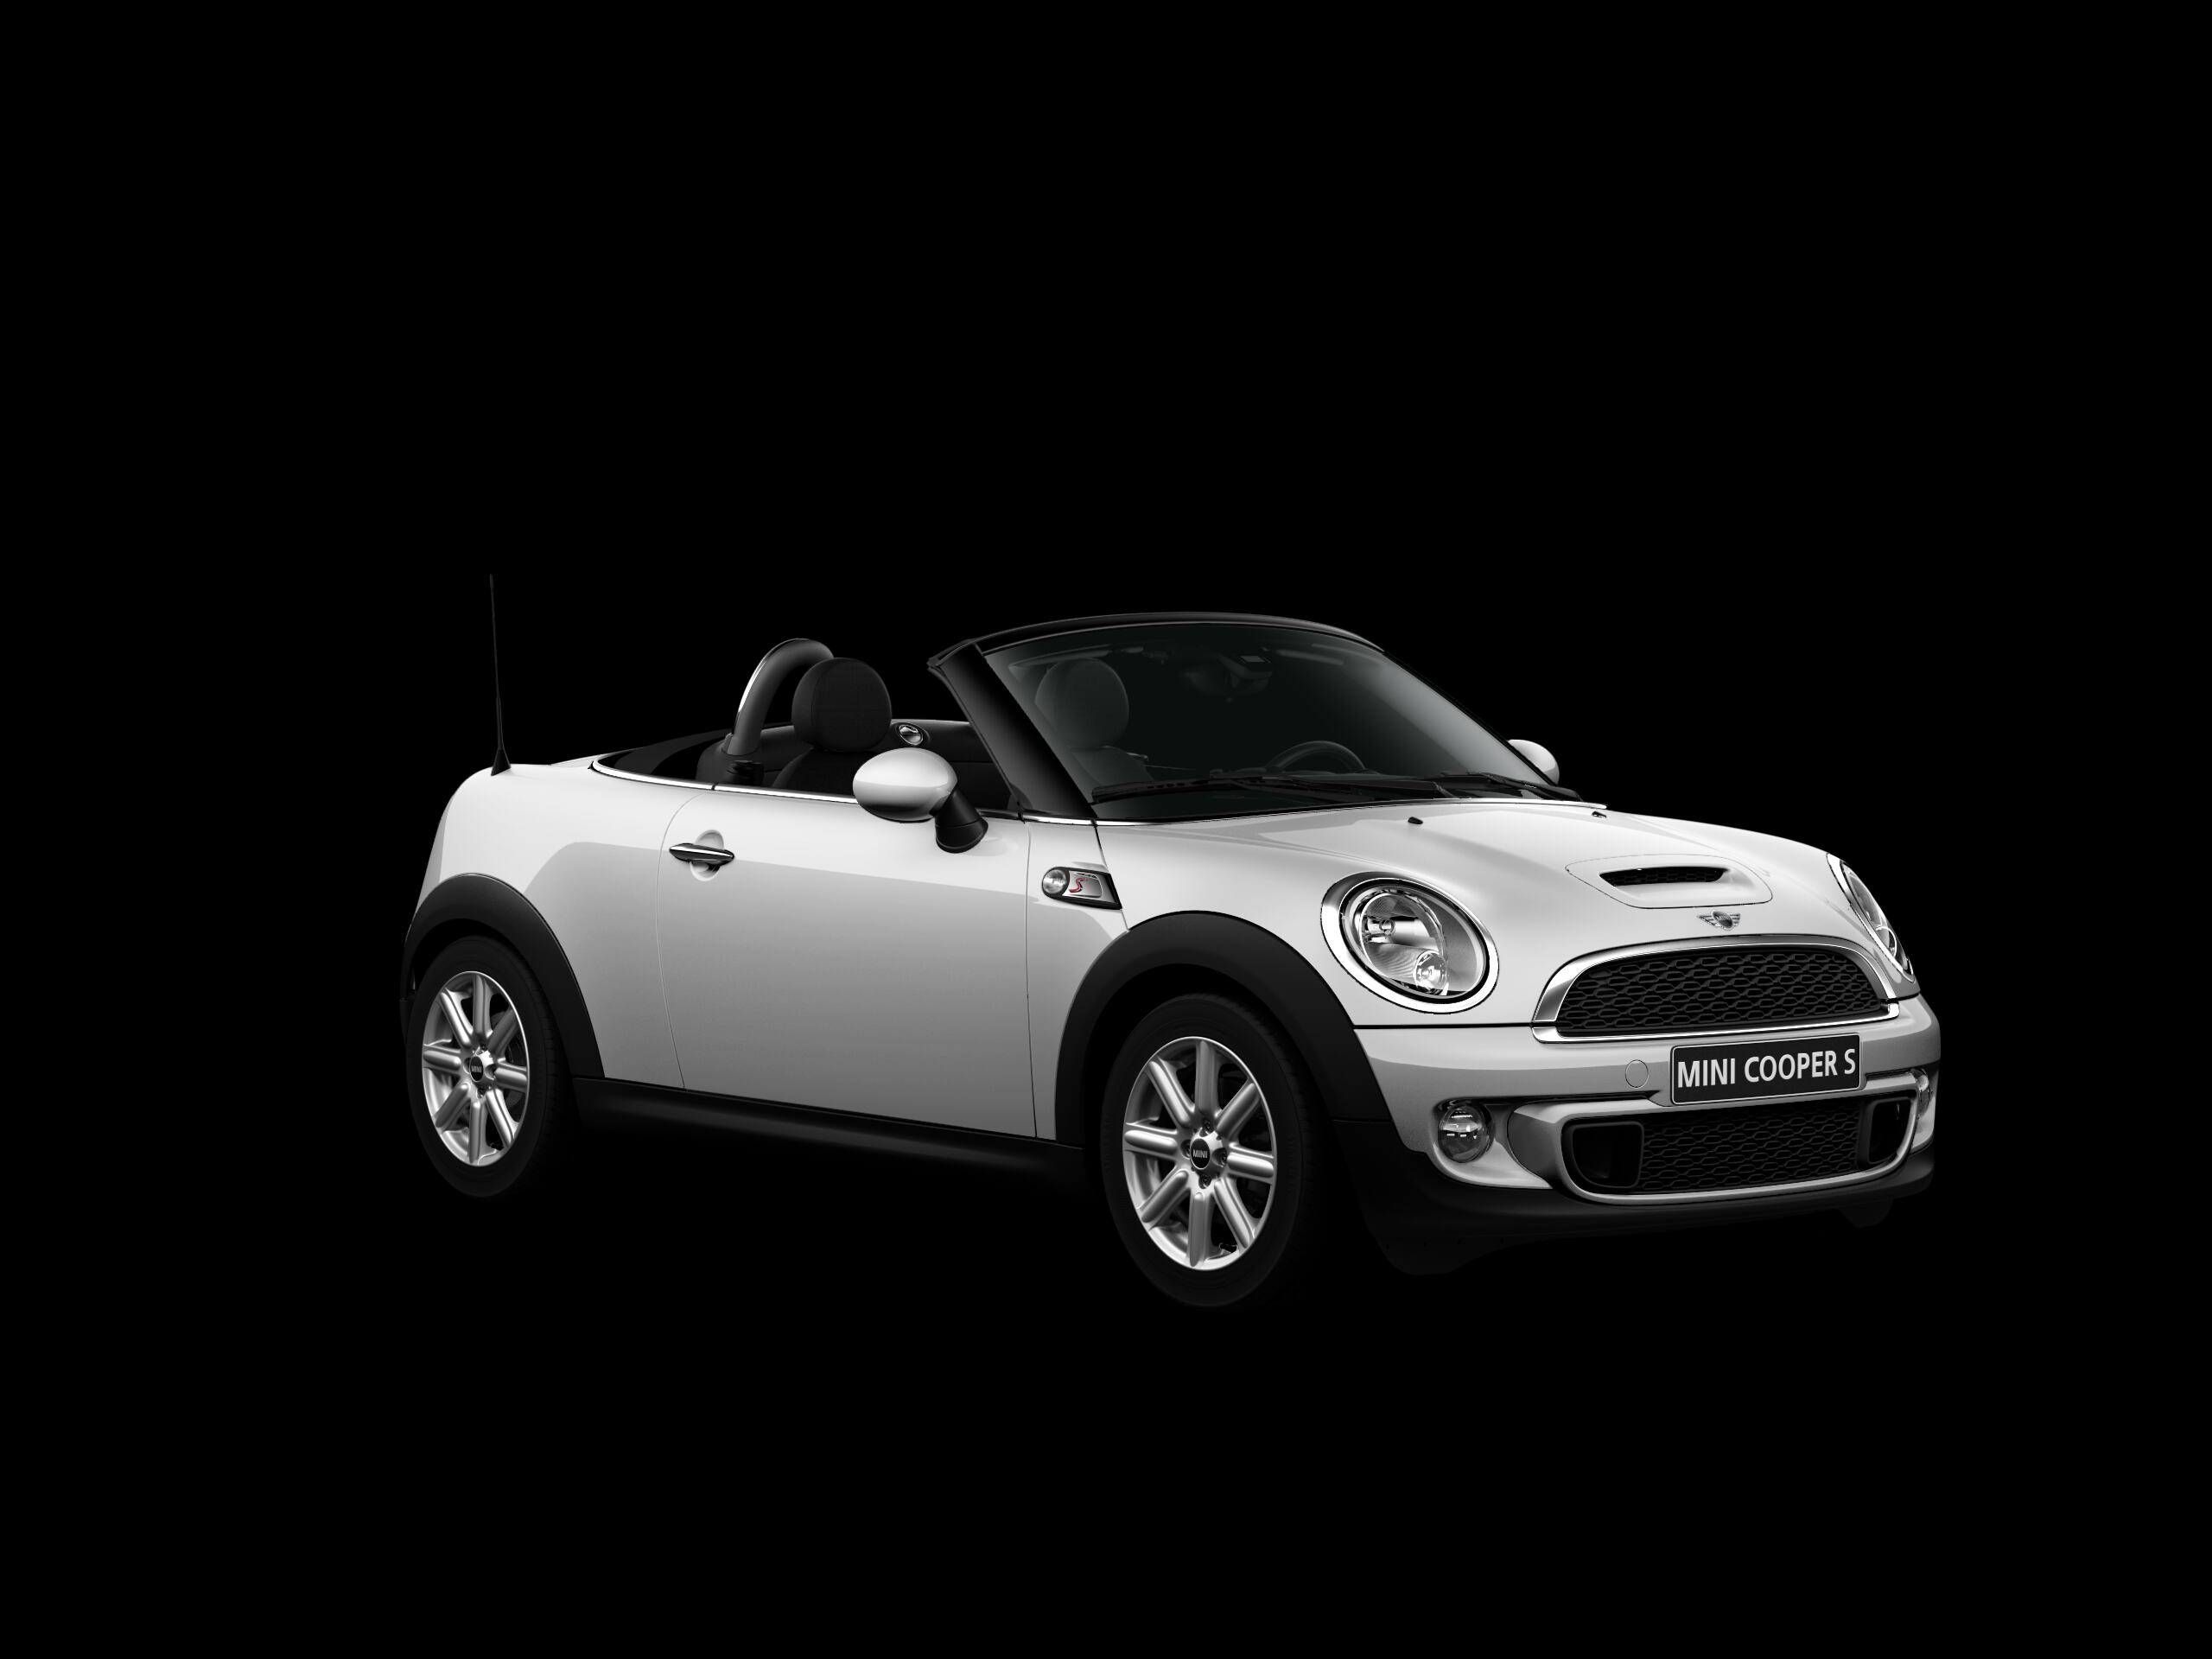 MINI CAR ACCESSORIES ROADSTER.